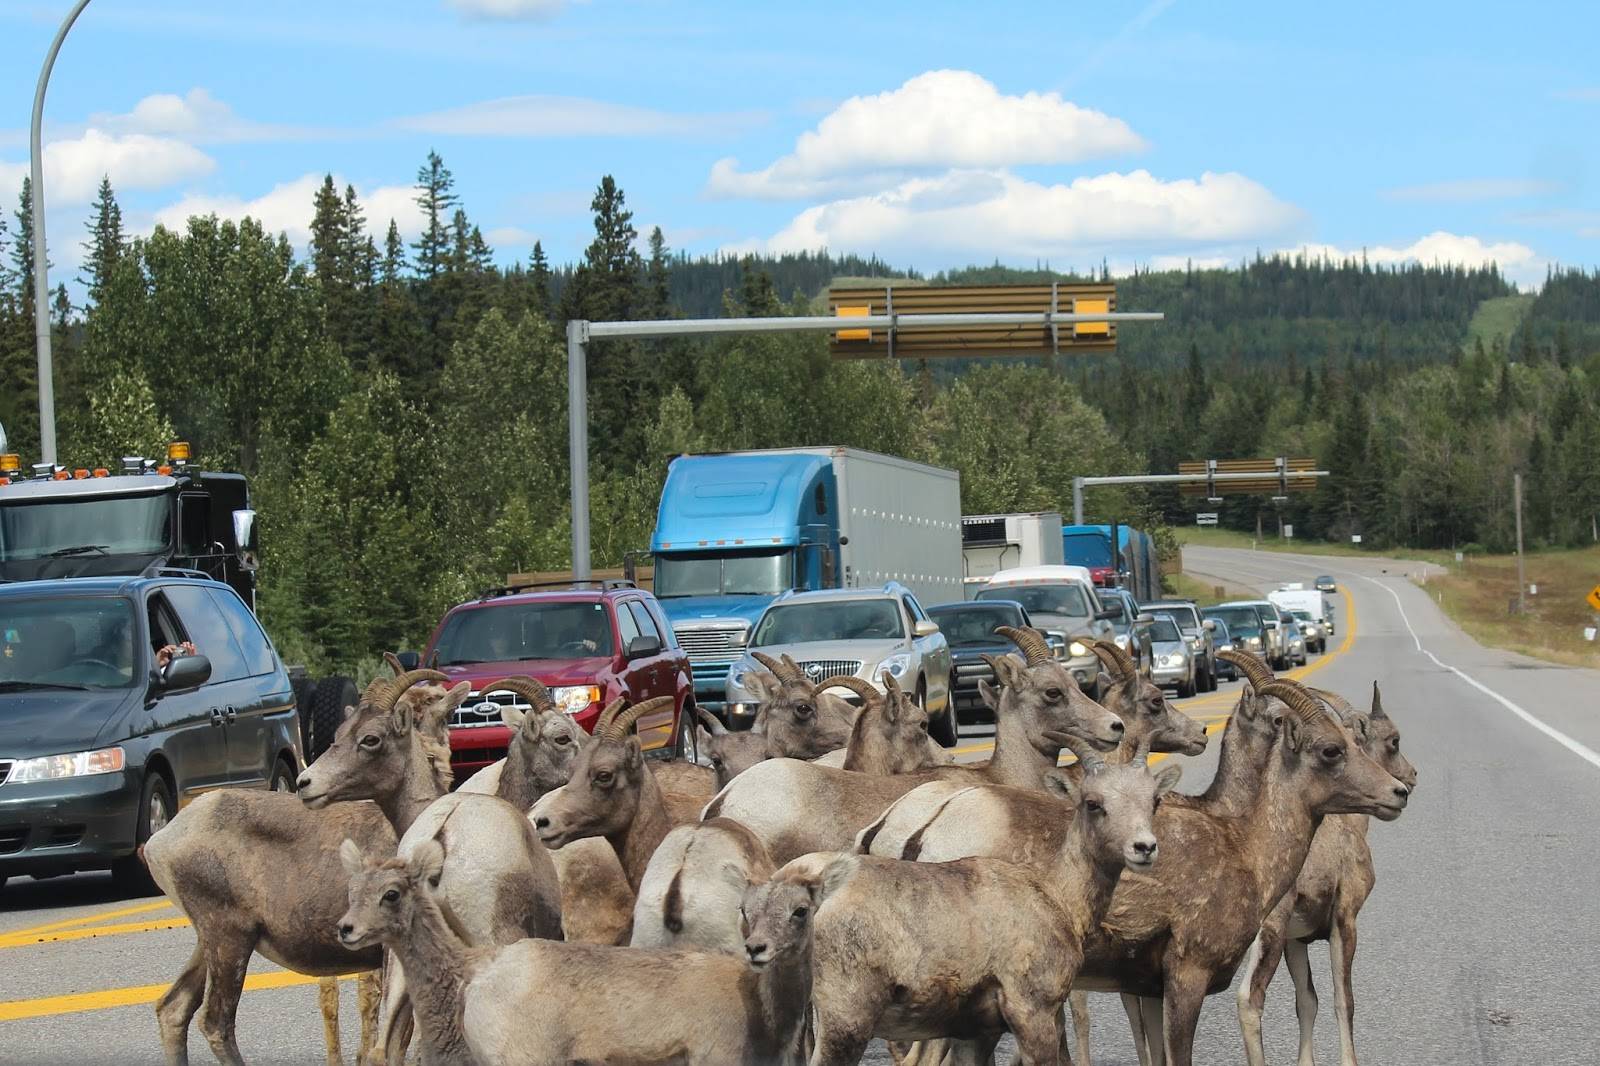 Funny picture of mountain goats stuck in traffic.